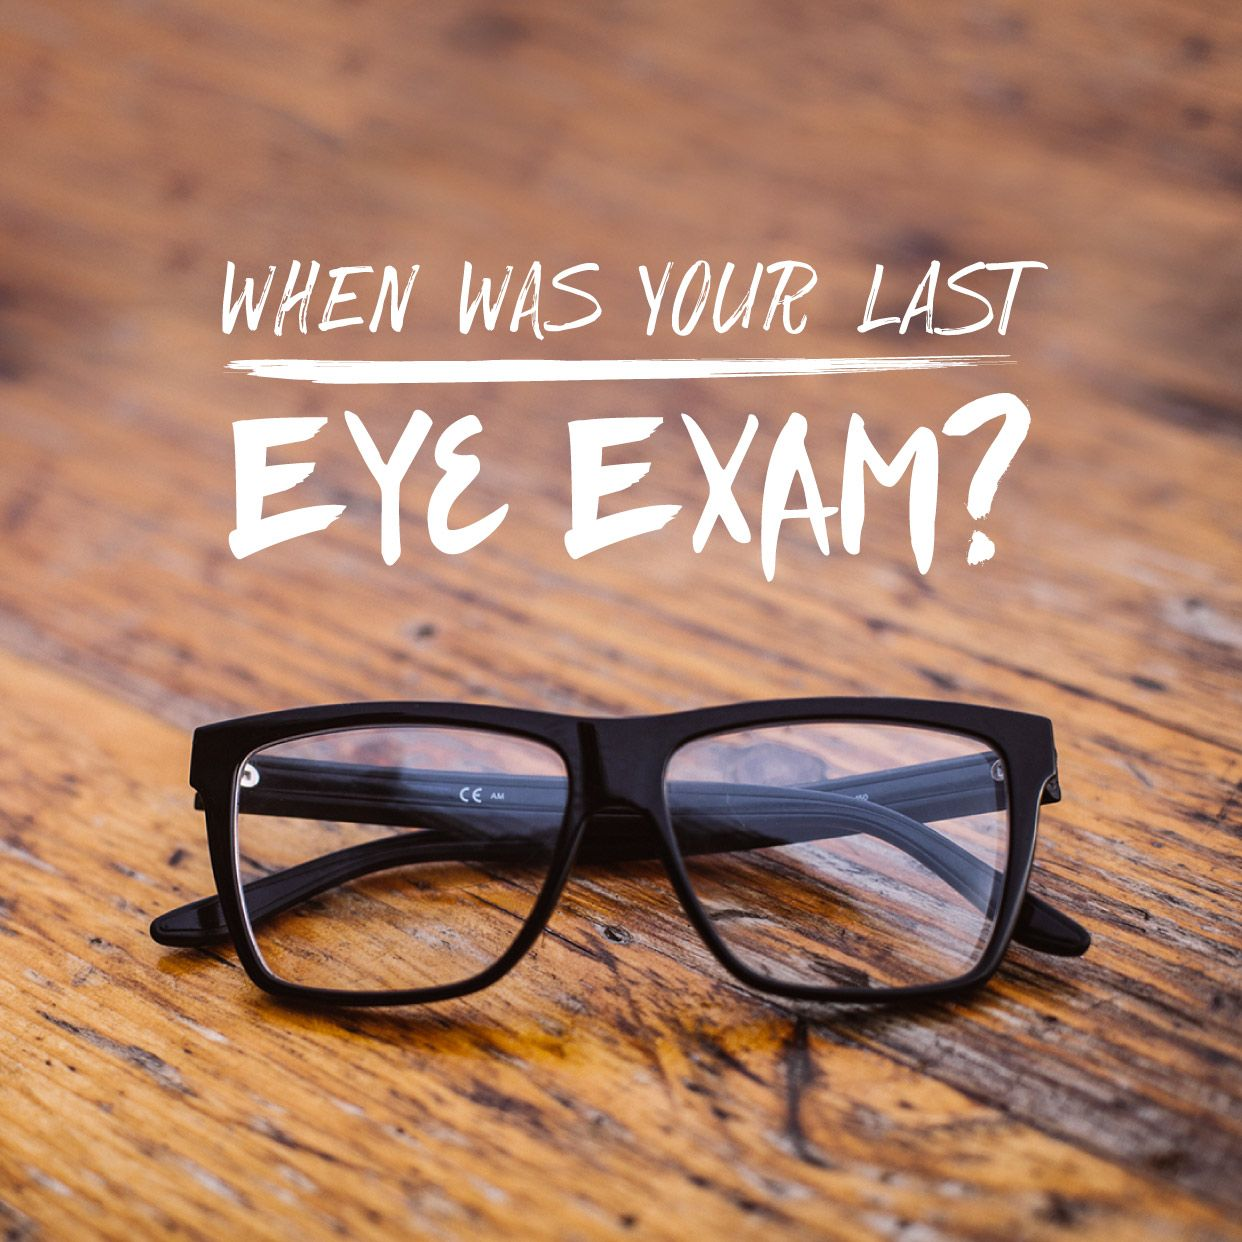 IS YOUR NEXT EYE EXAM SCHEDULED? Eye exams are essential to preventing disease and keeping your eyes healthy! Call today or go online to schedule your exam.